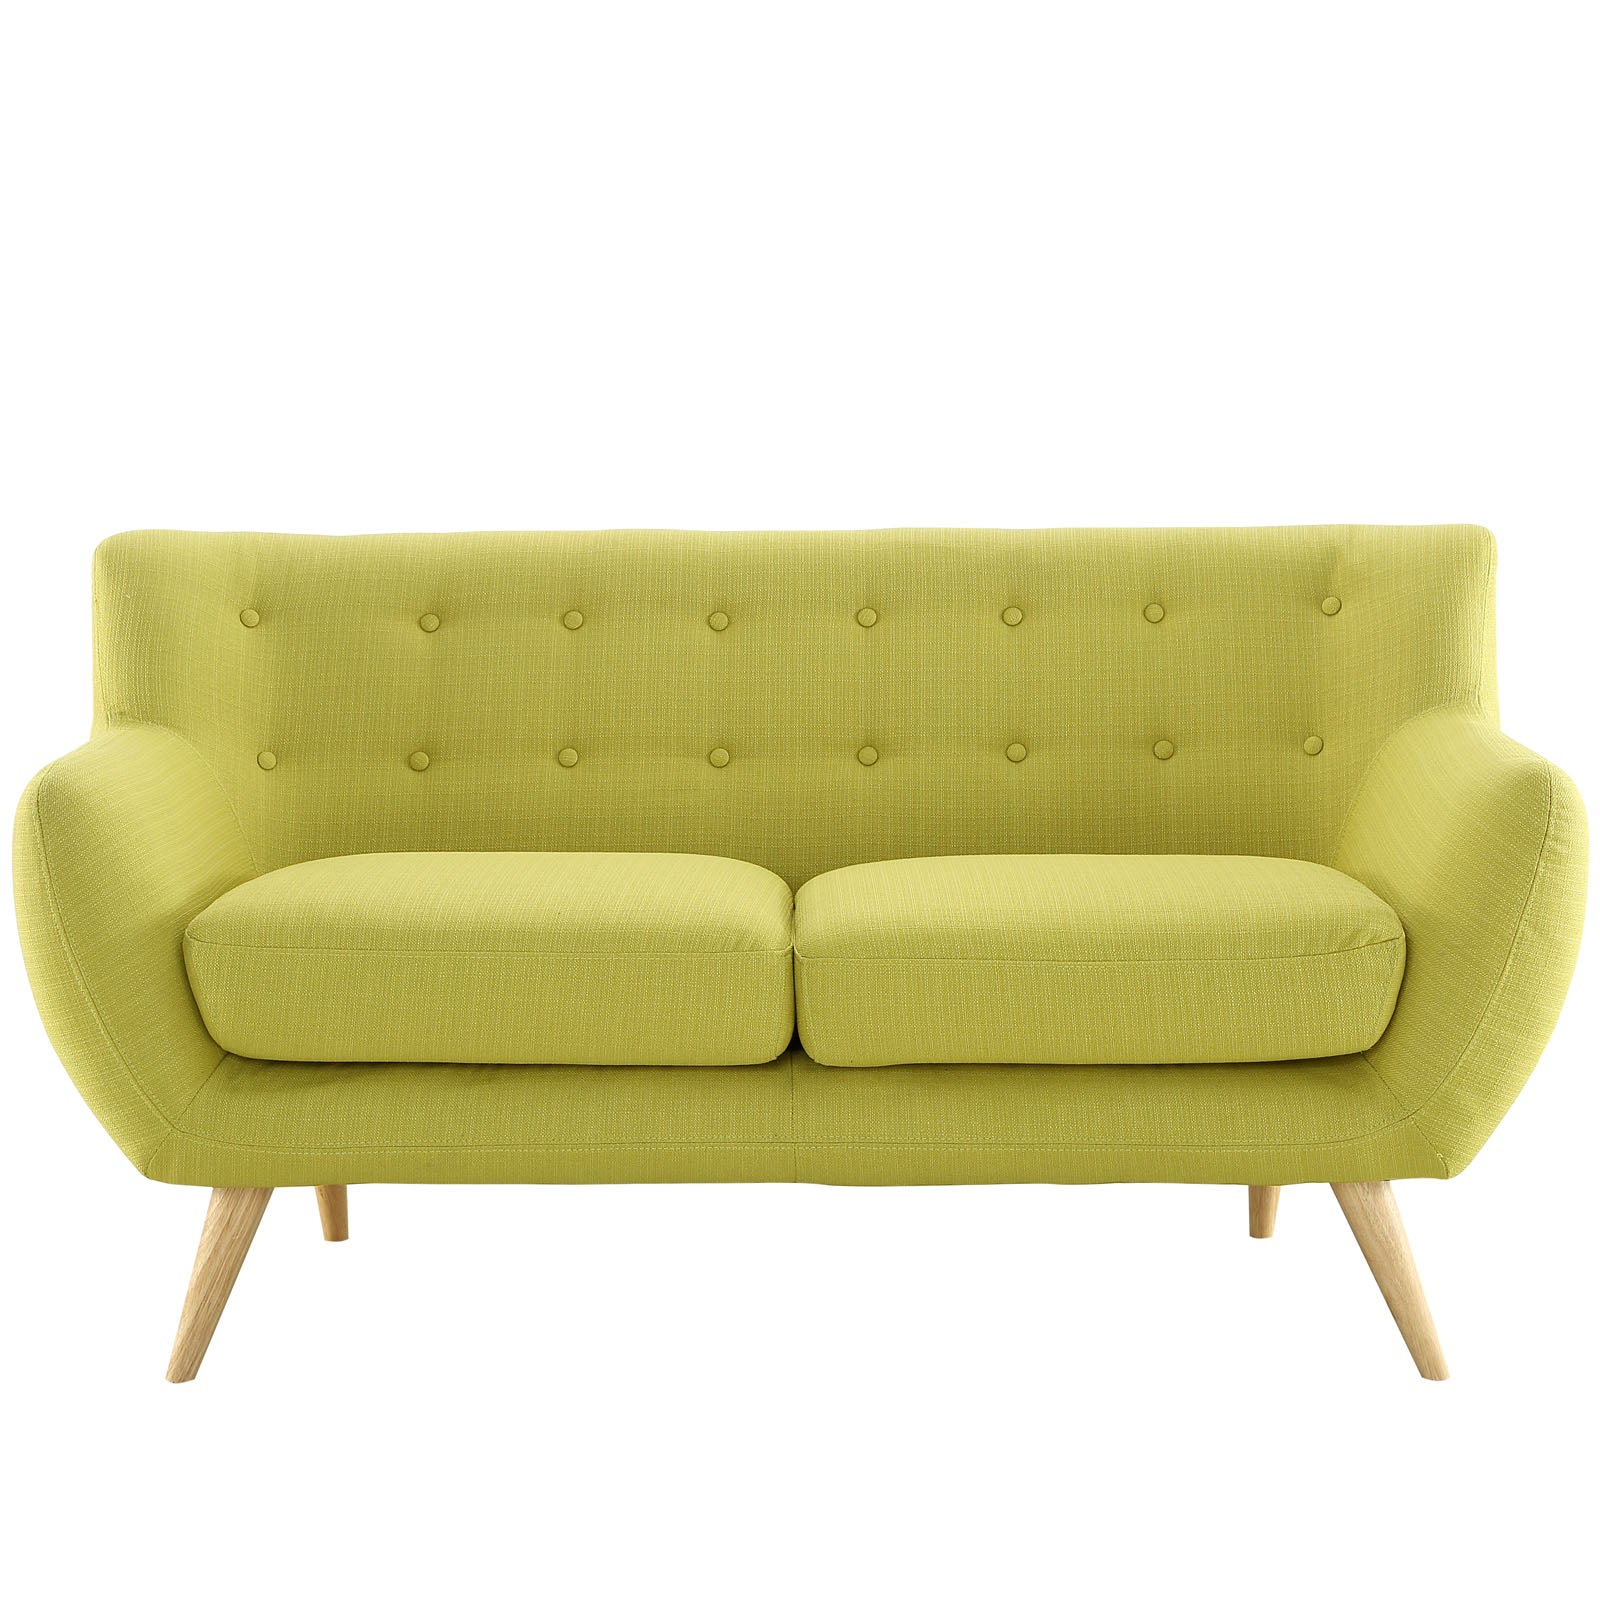 Modway Loveseats On Sale Eei 1632 Azu Remark Mid Century Modern Upholstered Loveseat Only Only 596 05 At Contemporary Furniture Warehouse